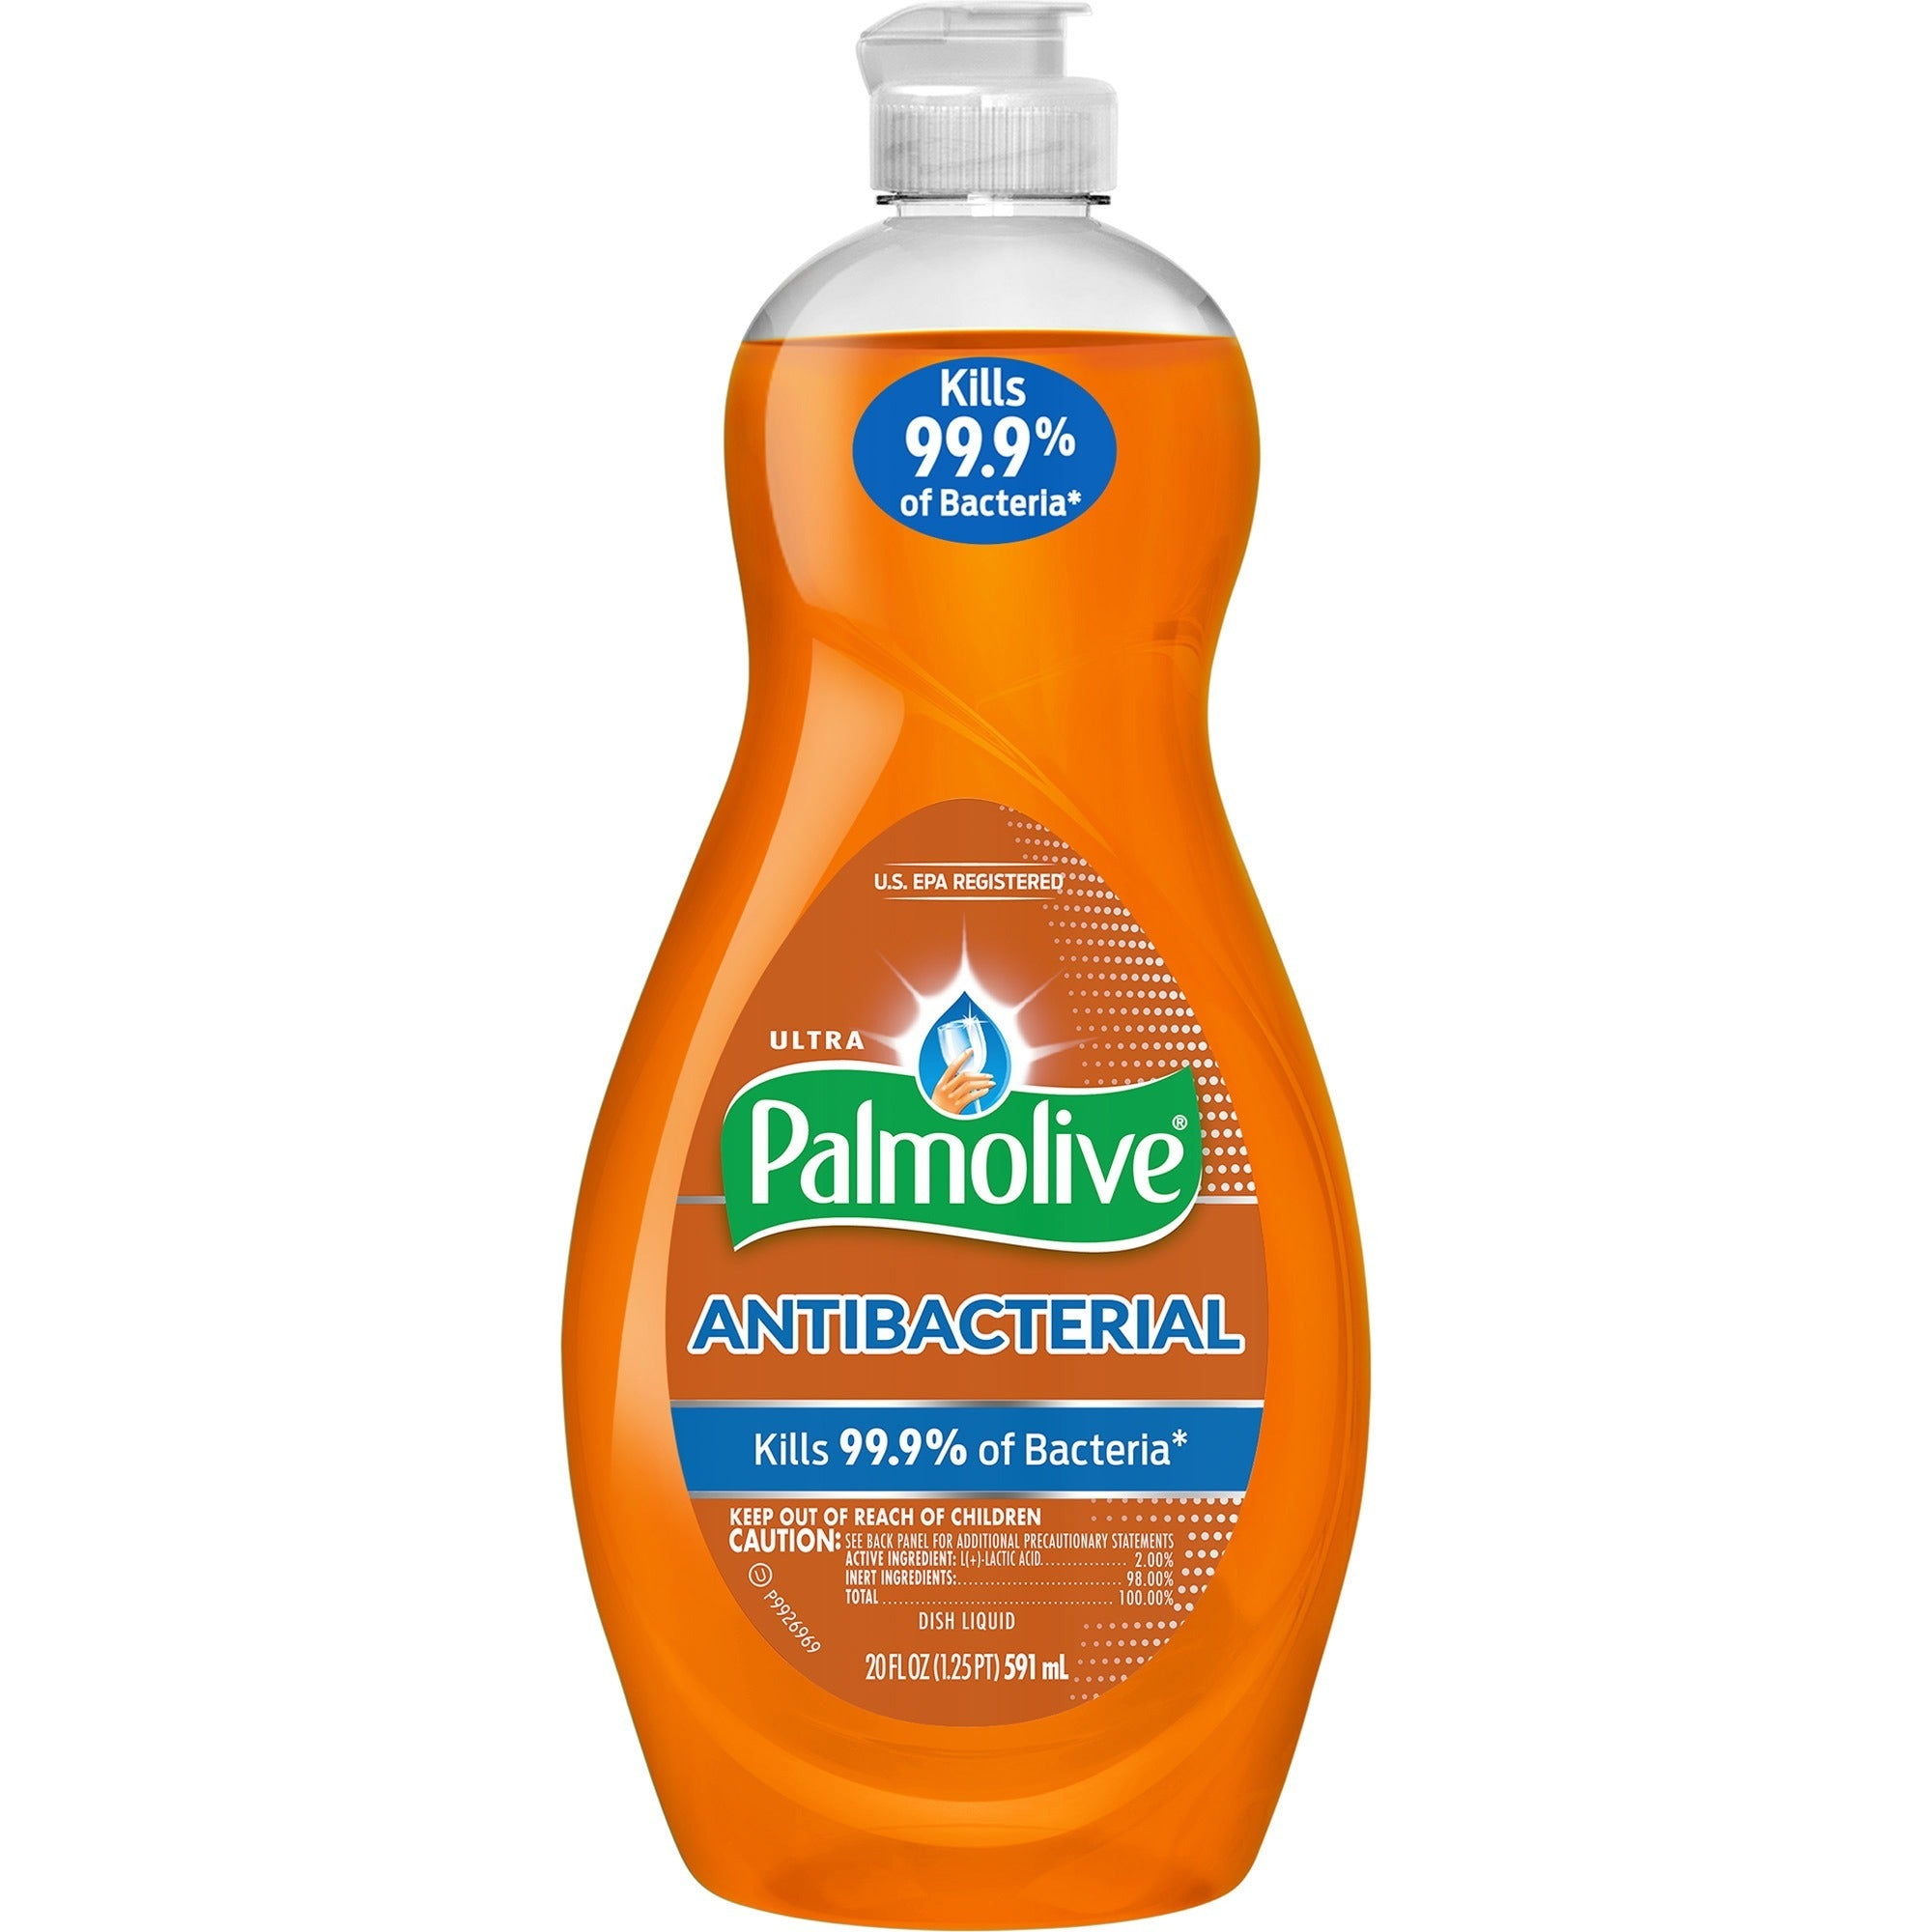 Palmolive Antibacterial Dishwashing Liquid 20oz